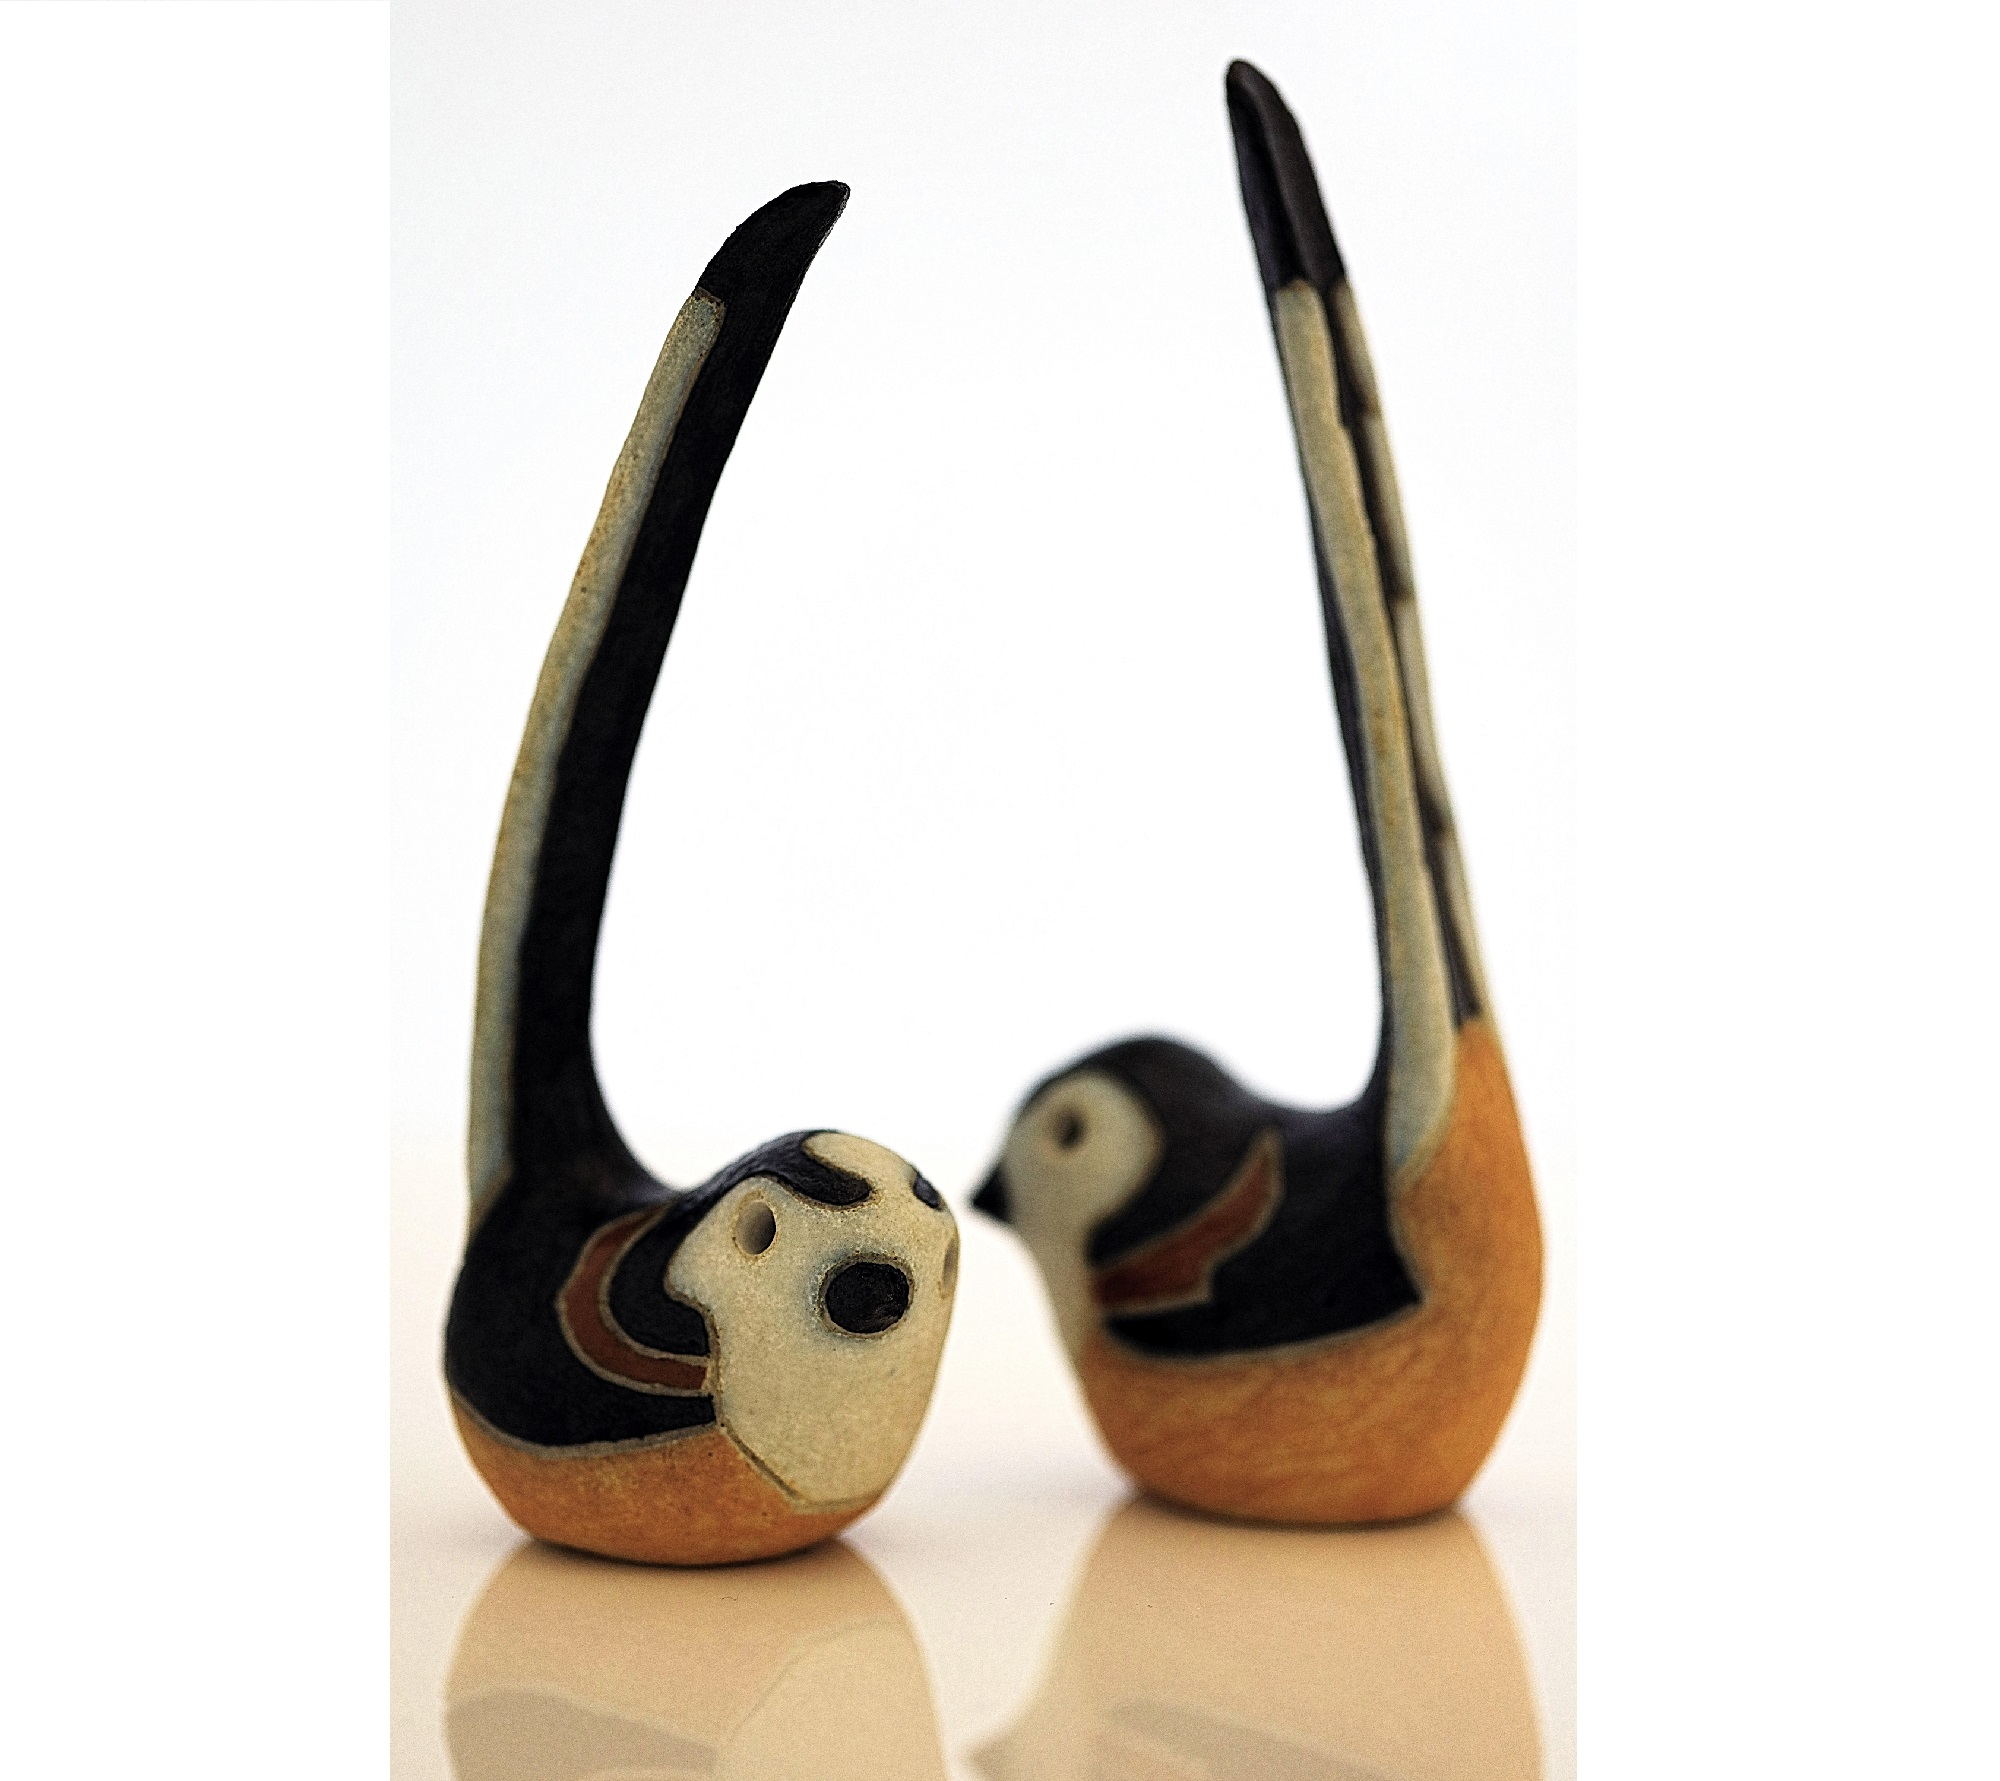 Long-tailed tits, just over life-size, with a black and white matt glaze. These were one of three pottery birds created in 1987 by Rosemary Wren and Peter Crotty from drawings from life.